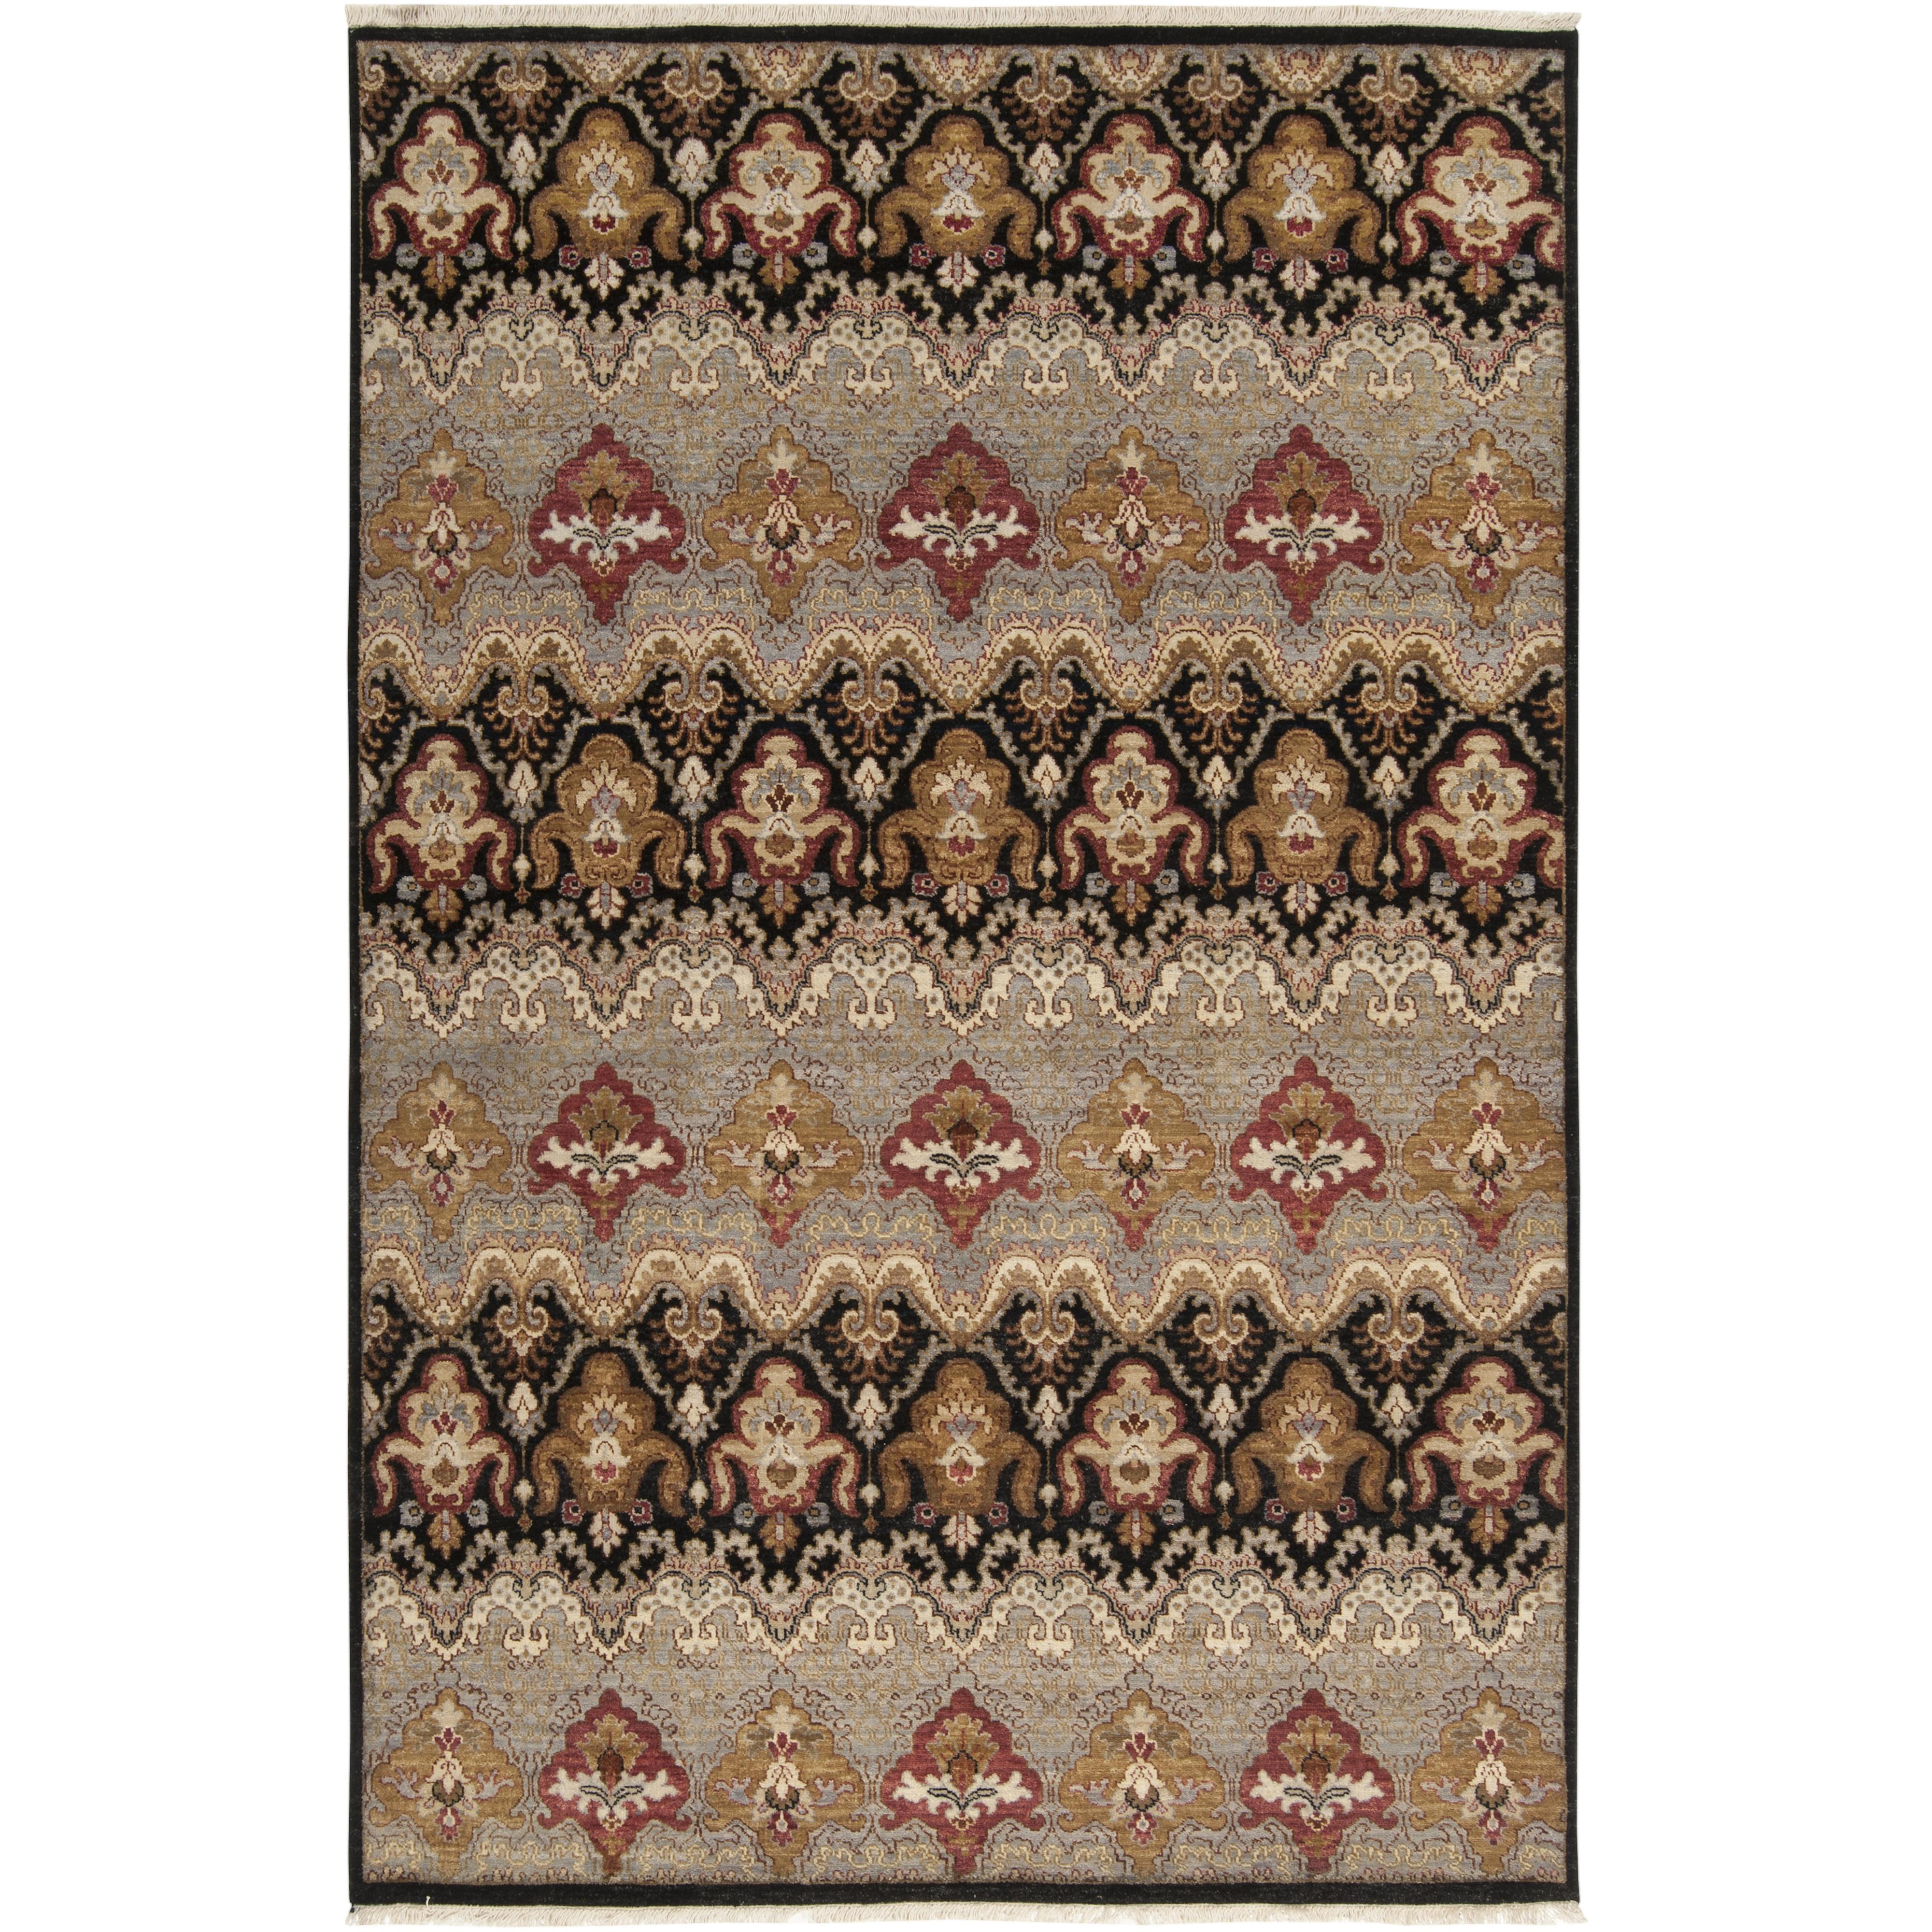 "Surya Rugs Cambridge 5'6"" x 8'6"" - Item Number: CMB8004-5686"